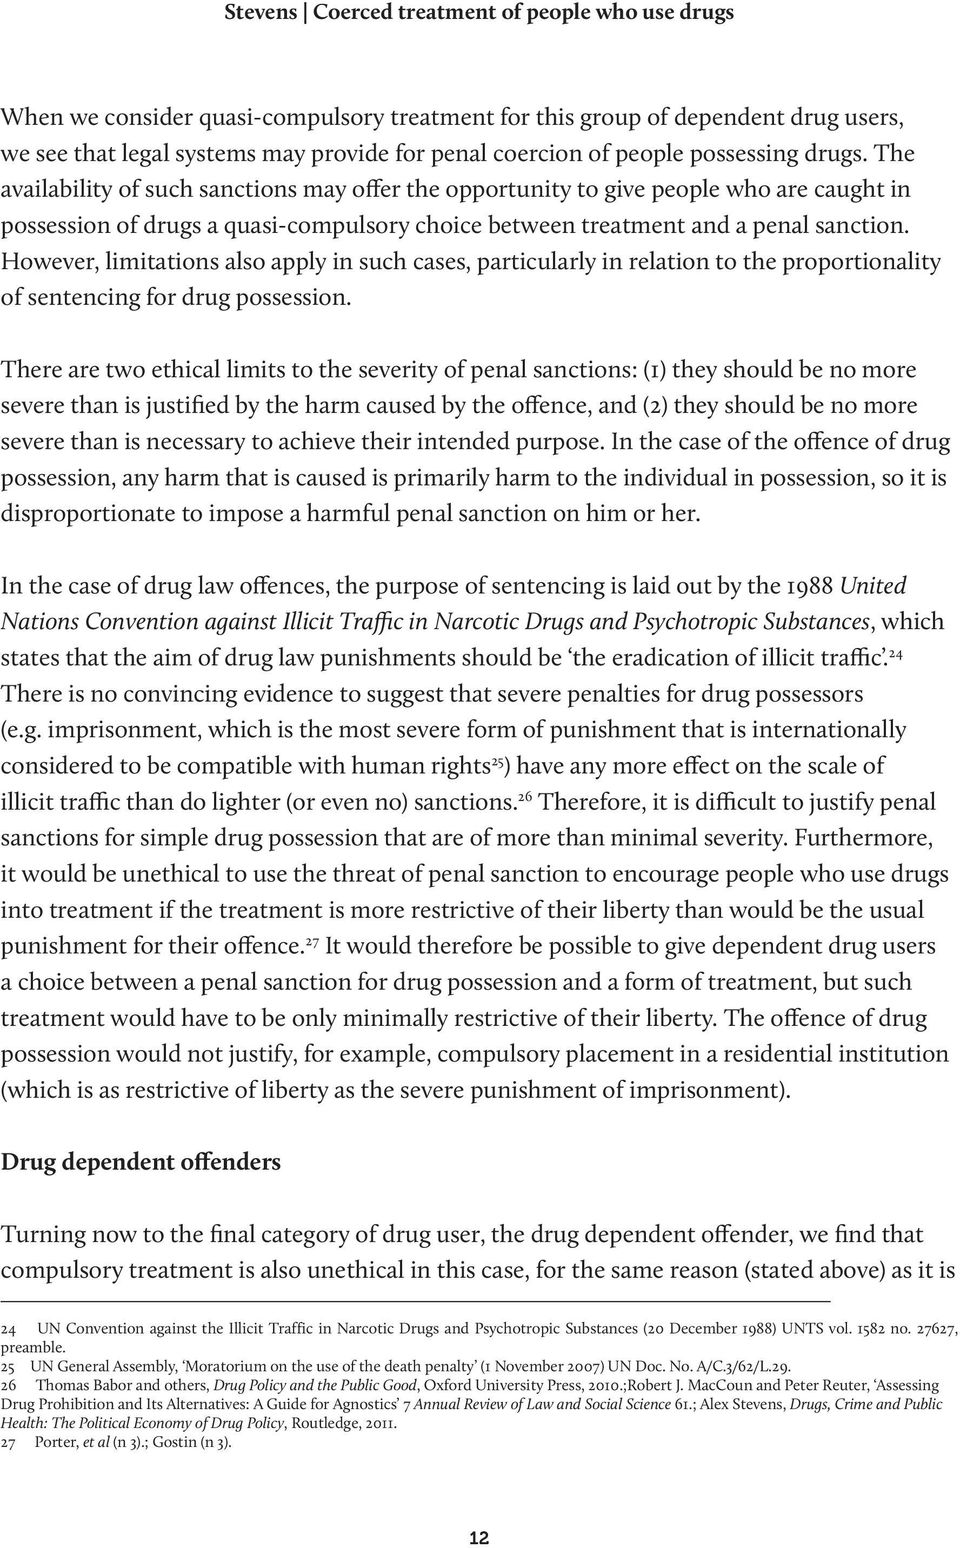 The availability of such sanctions may offer the opportunity to give people who are caught in possession of drugs a quasi-compulsory choice between treatment and a penal sanction.